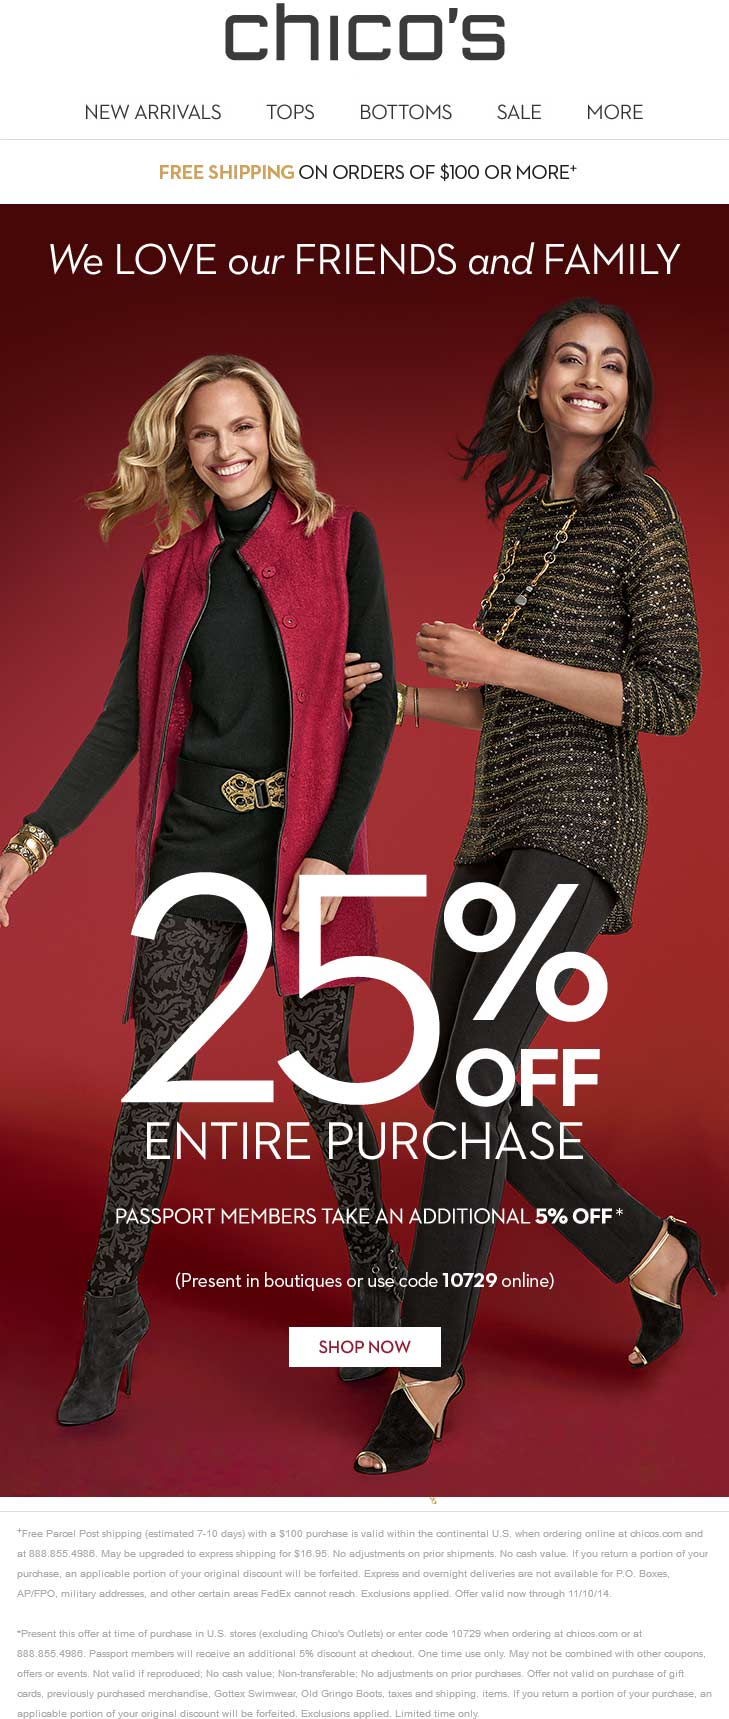 Chicos Coupon January 2017 25% off at Chicos, or online via promo code 10729